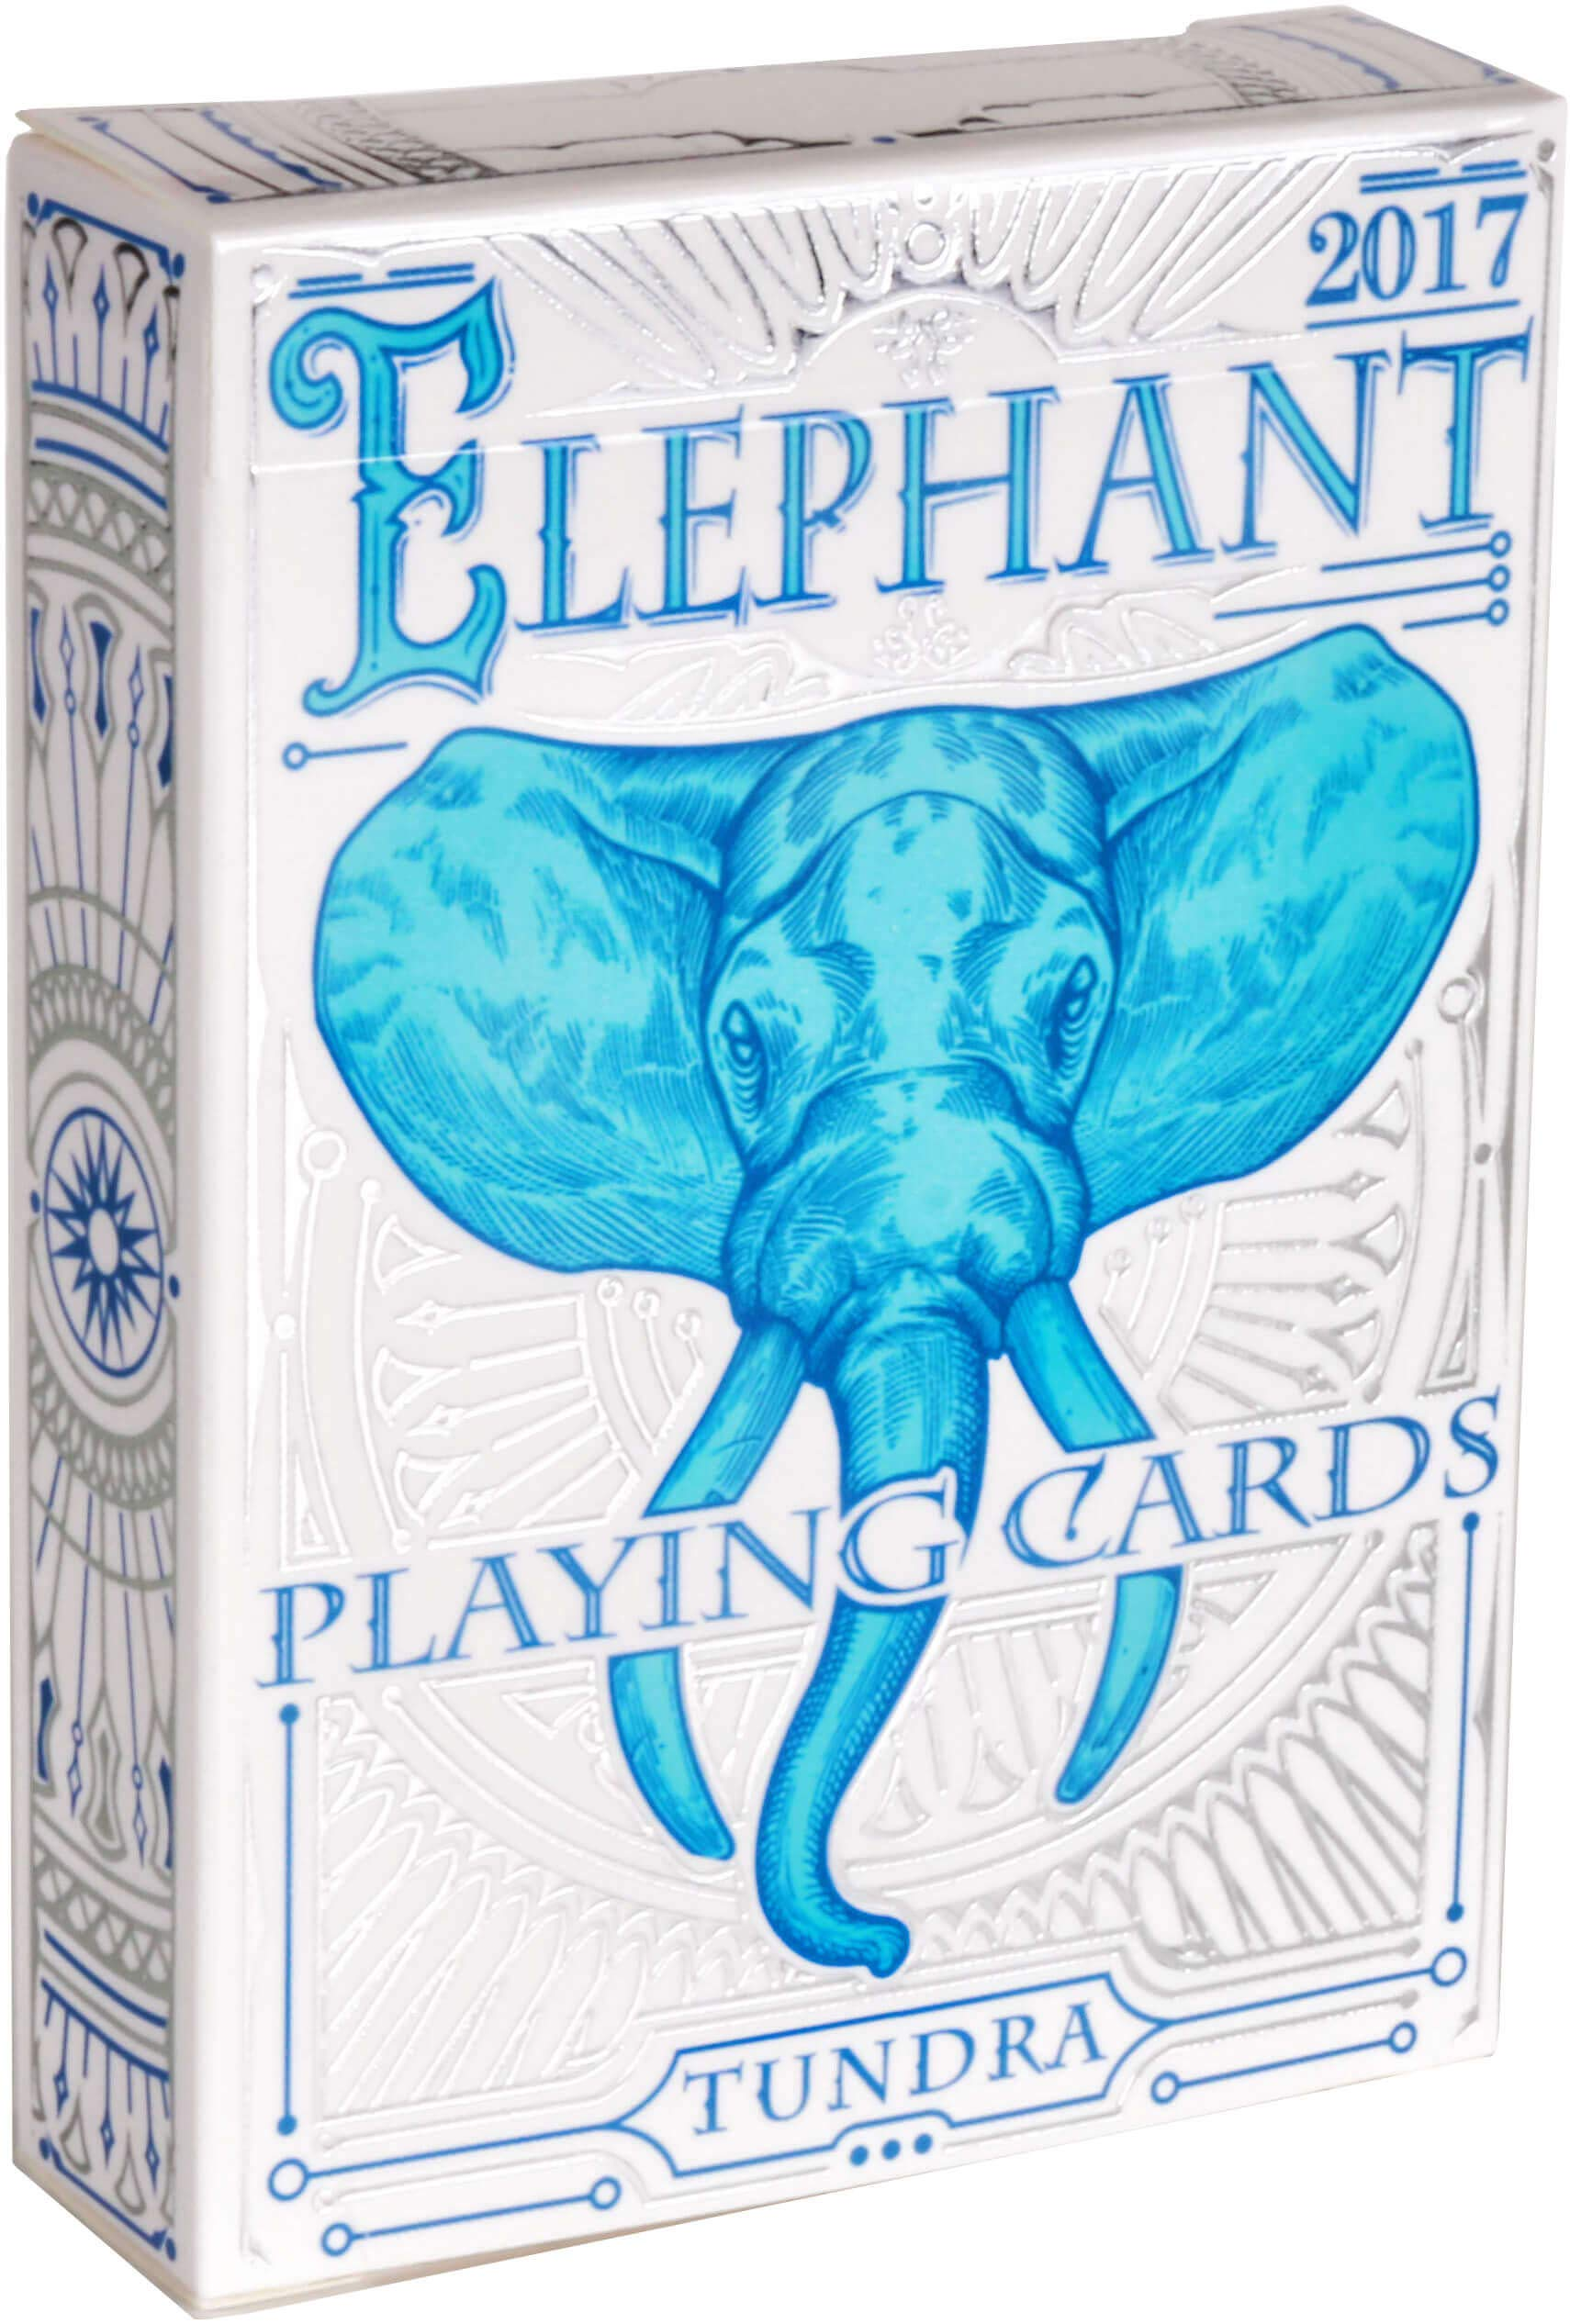 ELEPHANT PLAYING CARDS, Premium Deck of Cards, Cool Intricate Detail, Best Poker Cards, Unique Bright Rainbow & Red Colors for Kids & Adults, Playing Card Decks Games, Standard Size